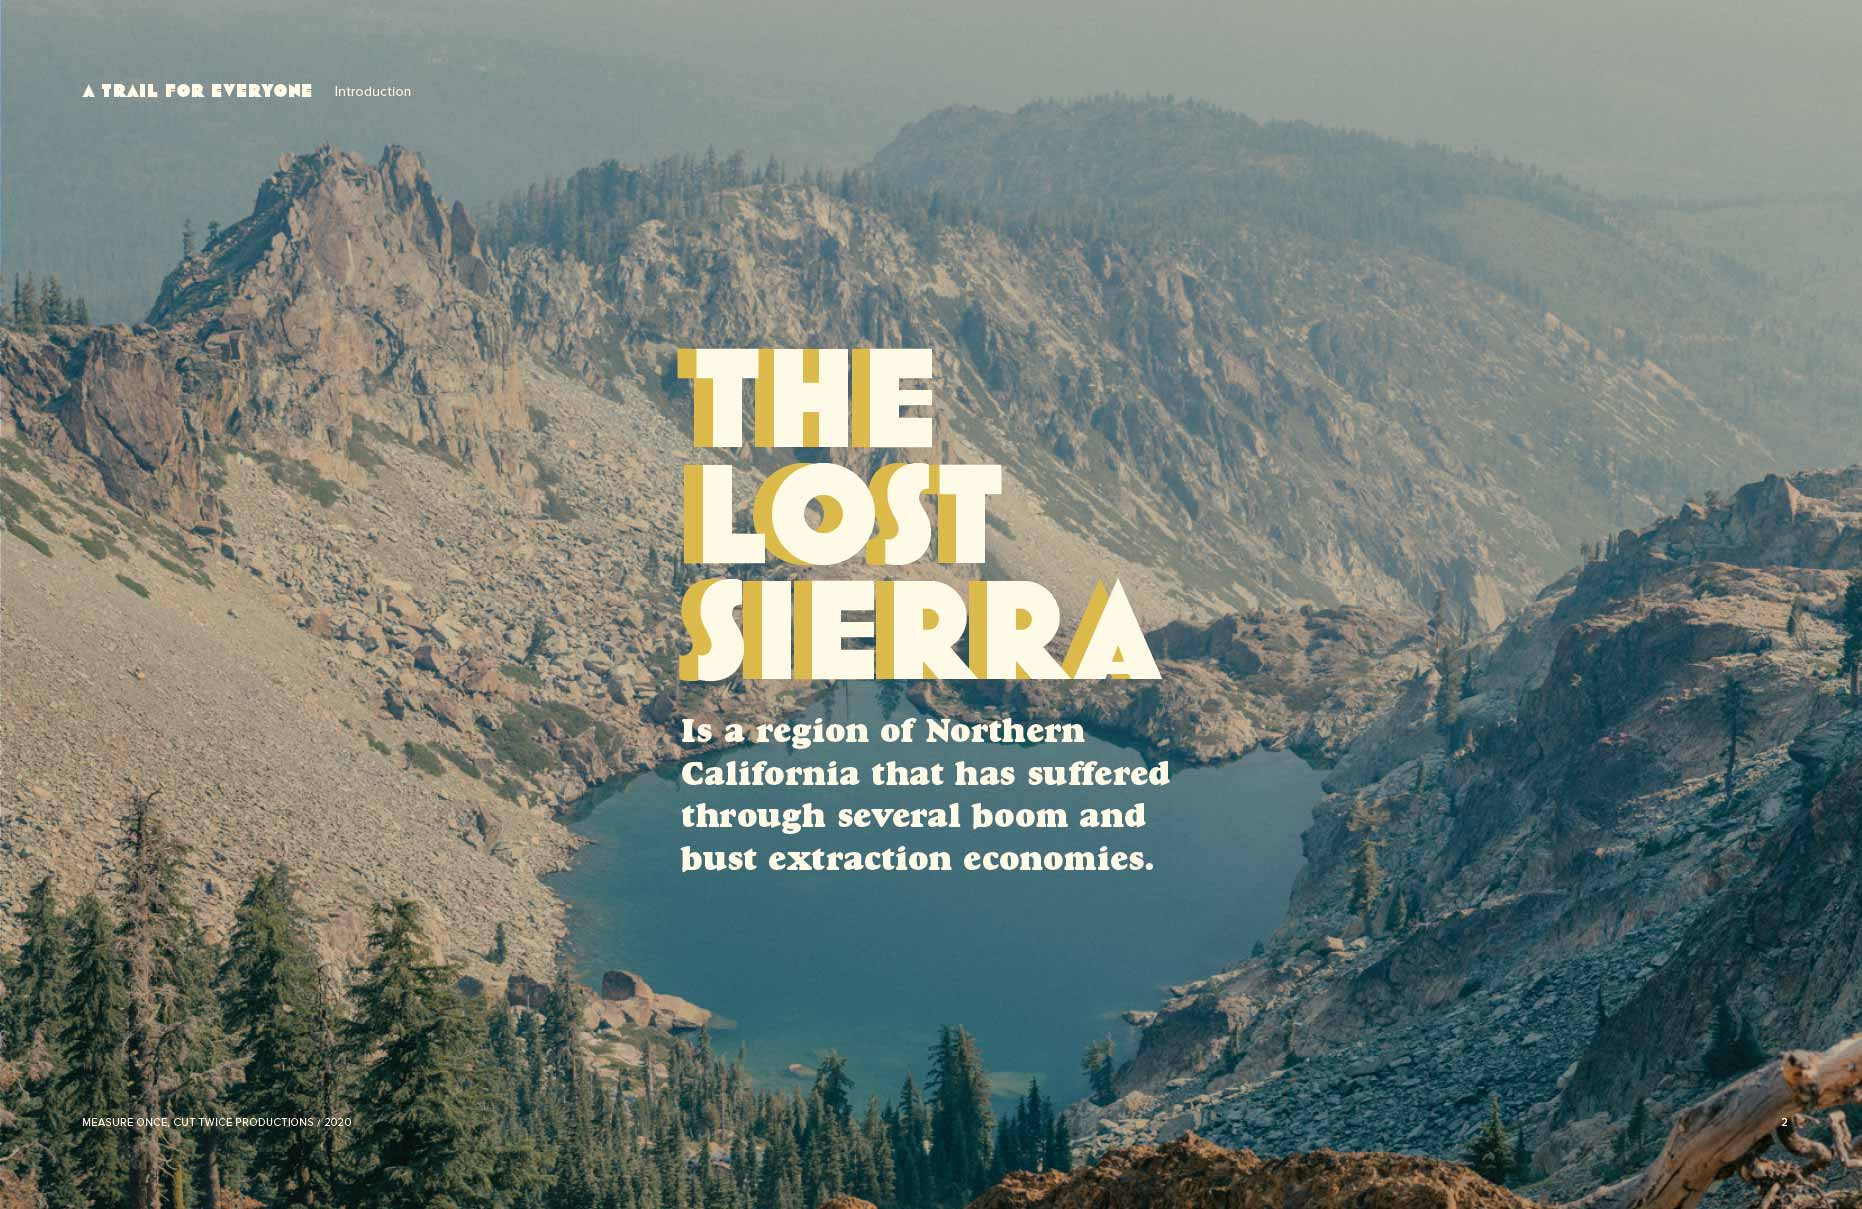 THE LOST SIERRA Is a region of Northern California that has suffered through several boom and bust extraction economies.